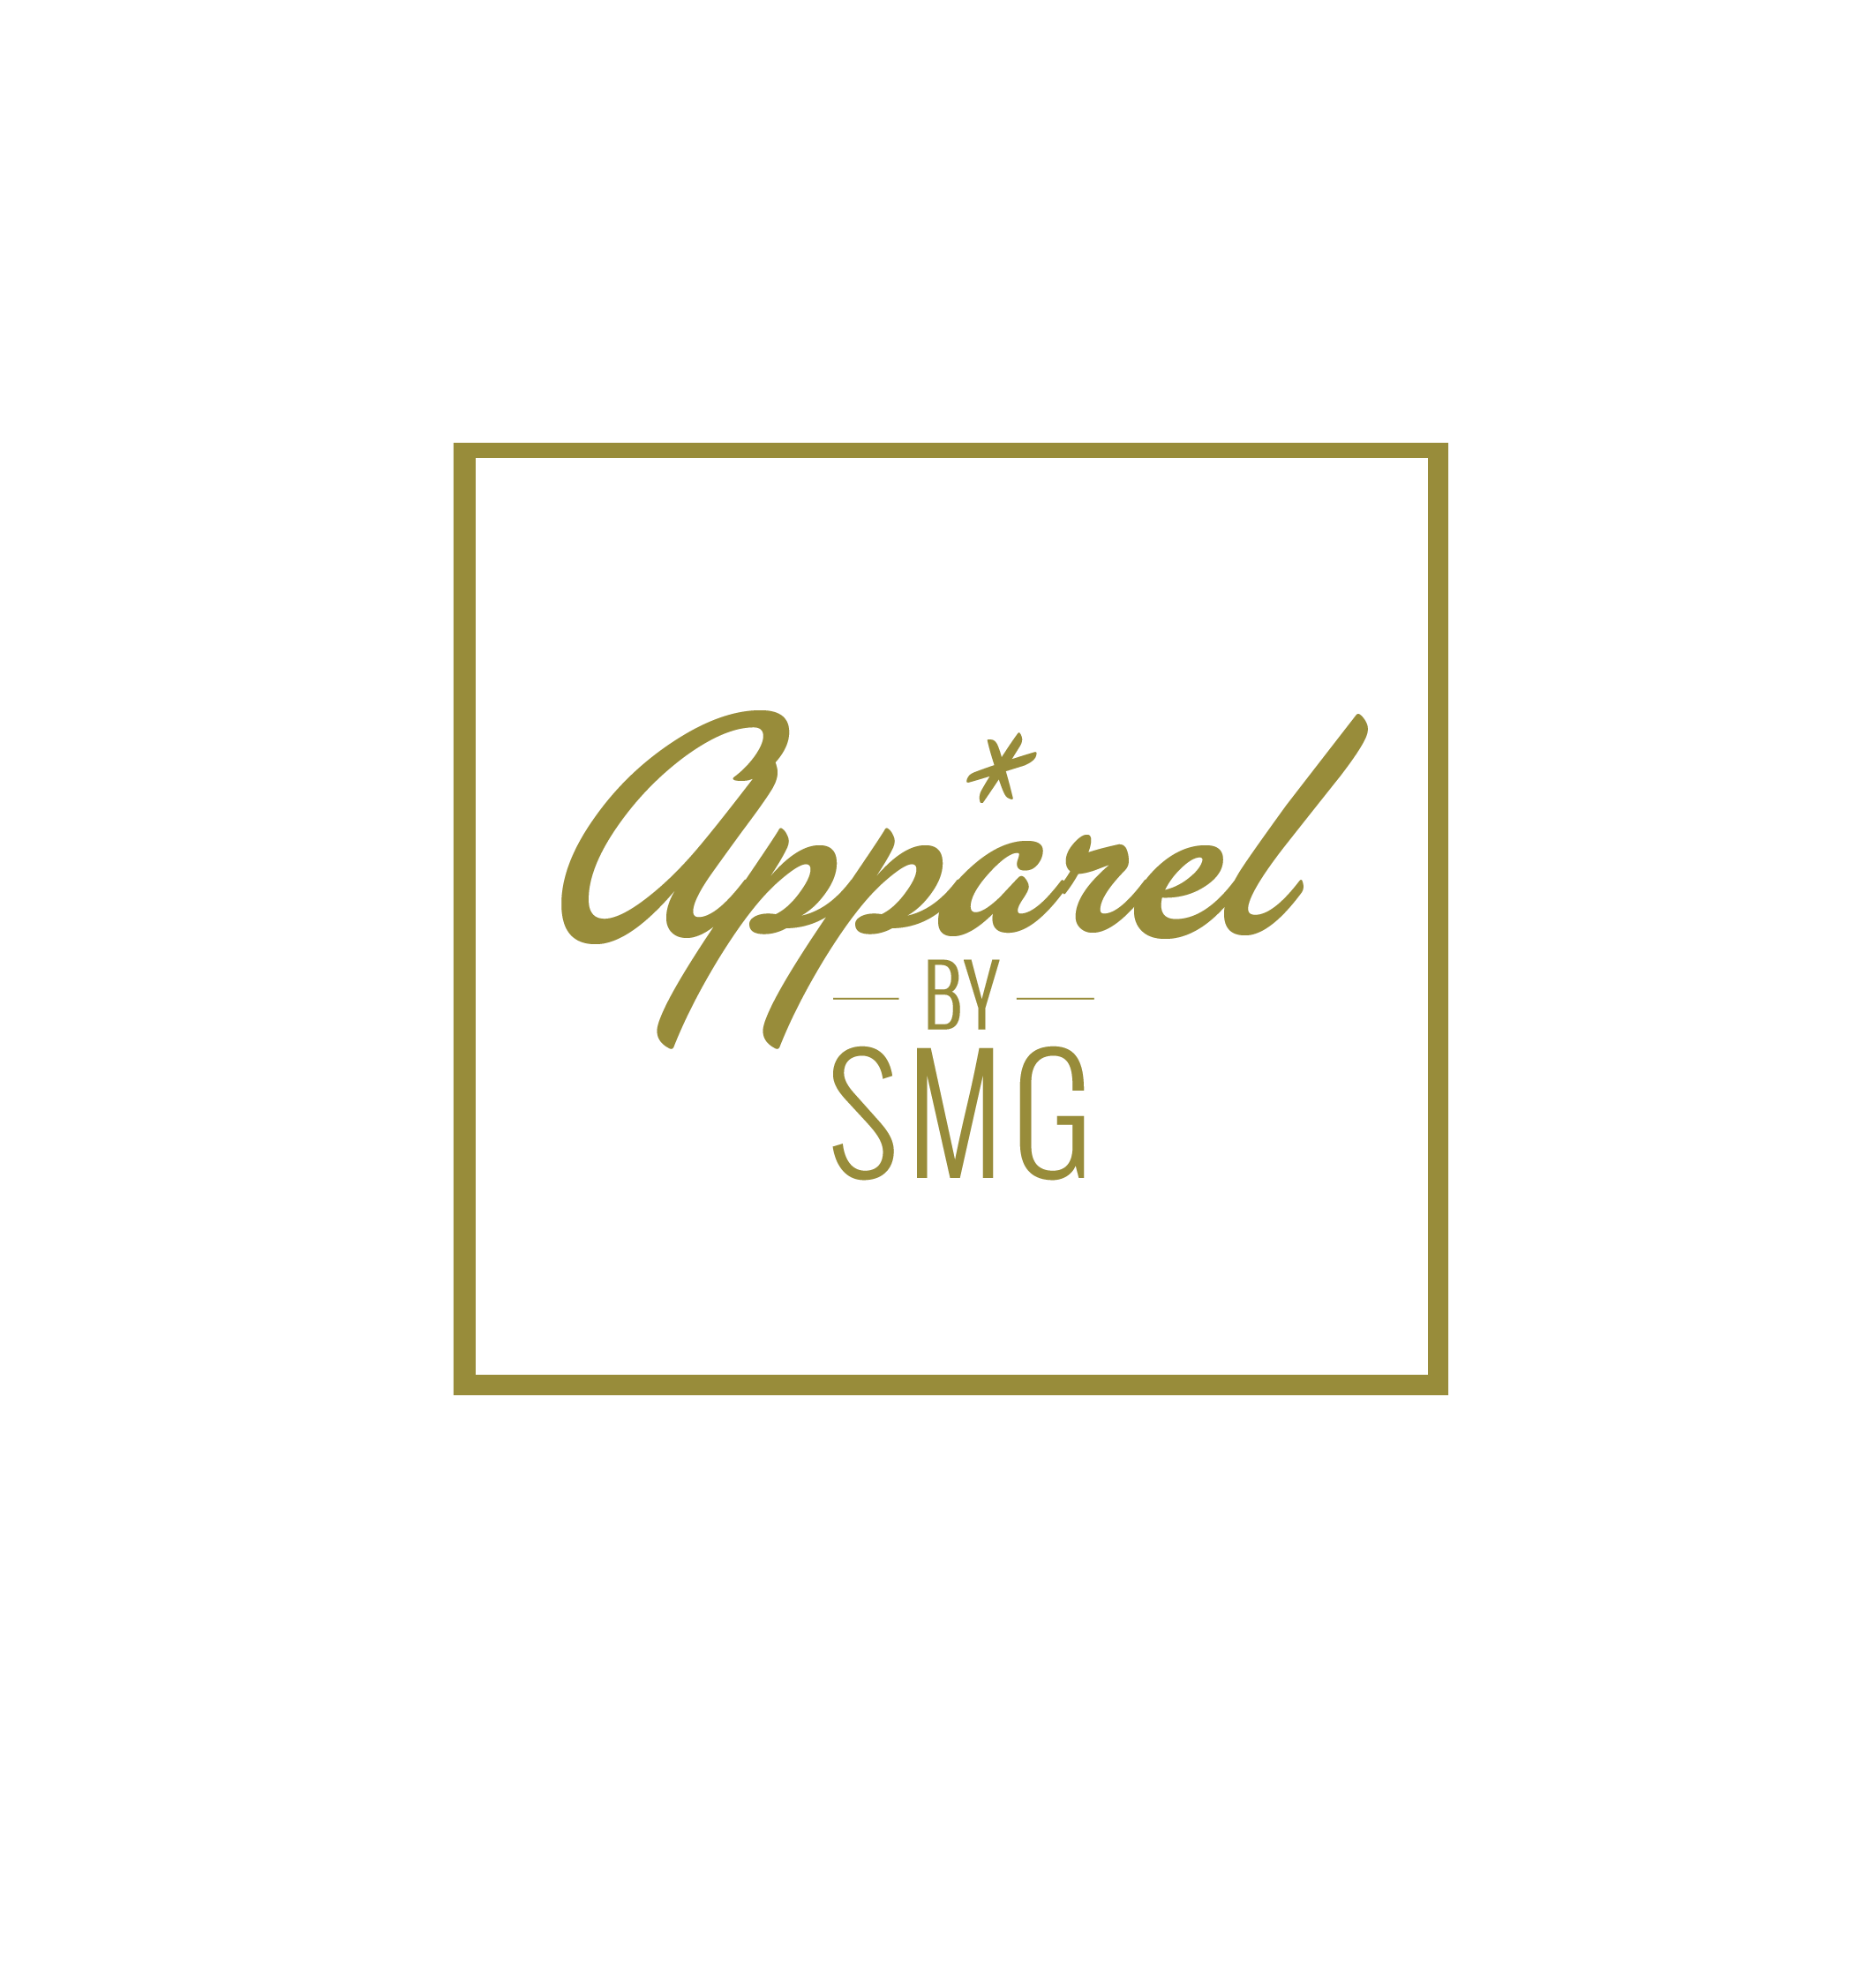 We make all the things you wear. - Your apparel production and design team, powered by Shalimar Media Group.